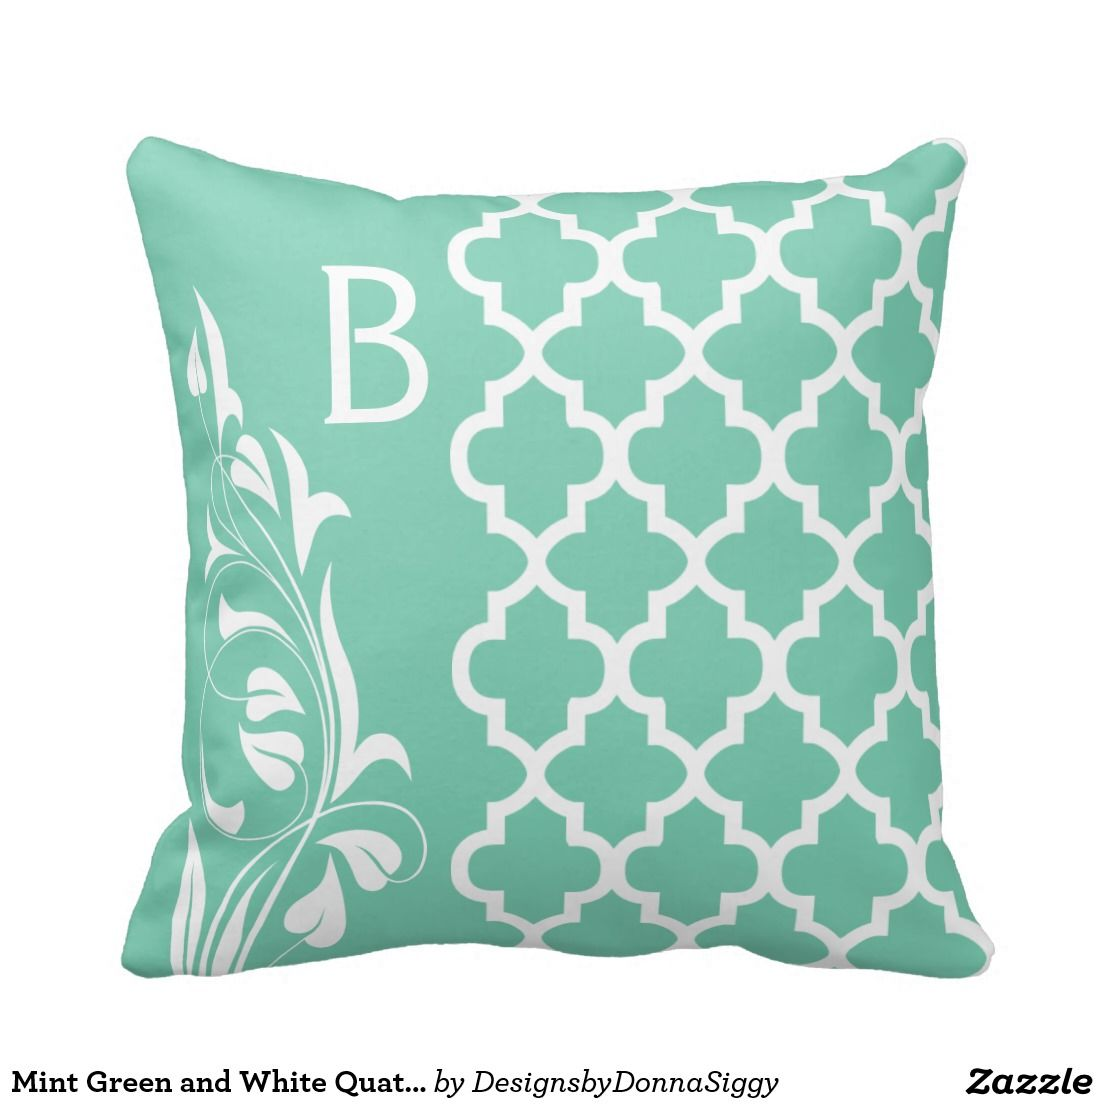 Mint Green and White #Quatrefoil Pattern Throw #Pillows #zazzlebesties #zazzle #shopping #gifts